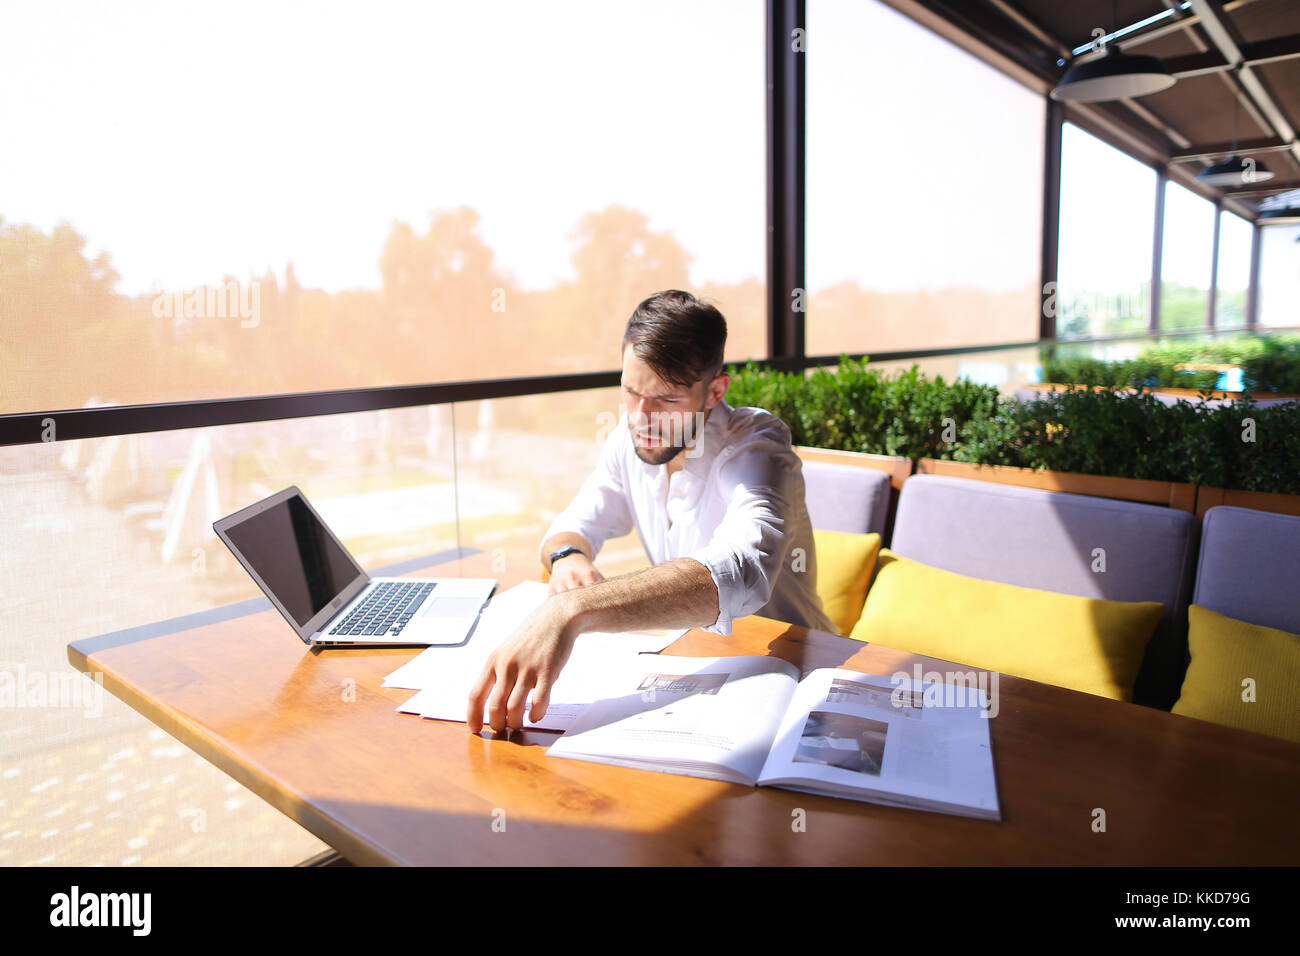 Marketing manager works with statistic documents and laptop at t - Stock Image